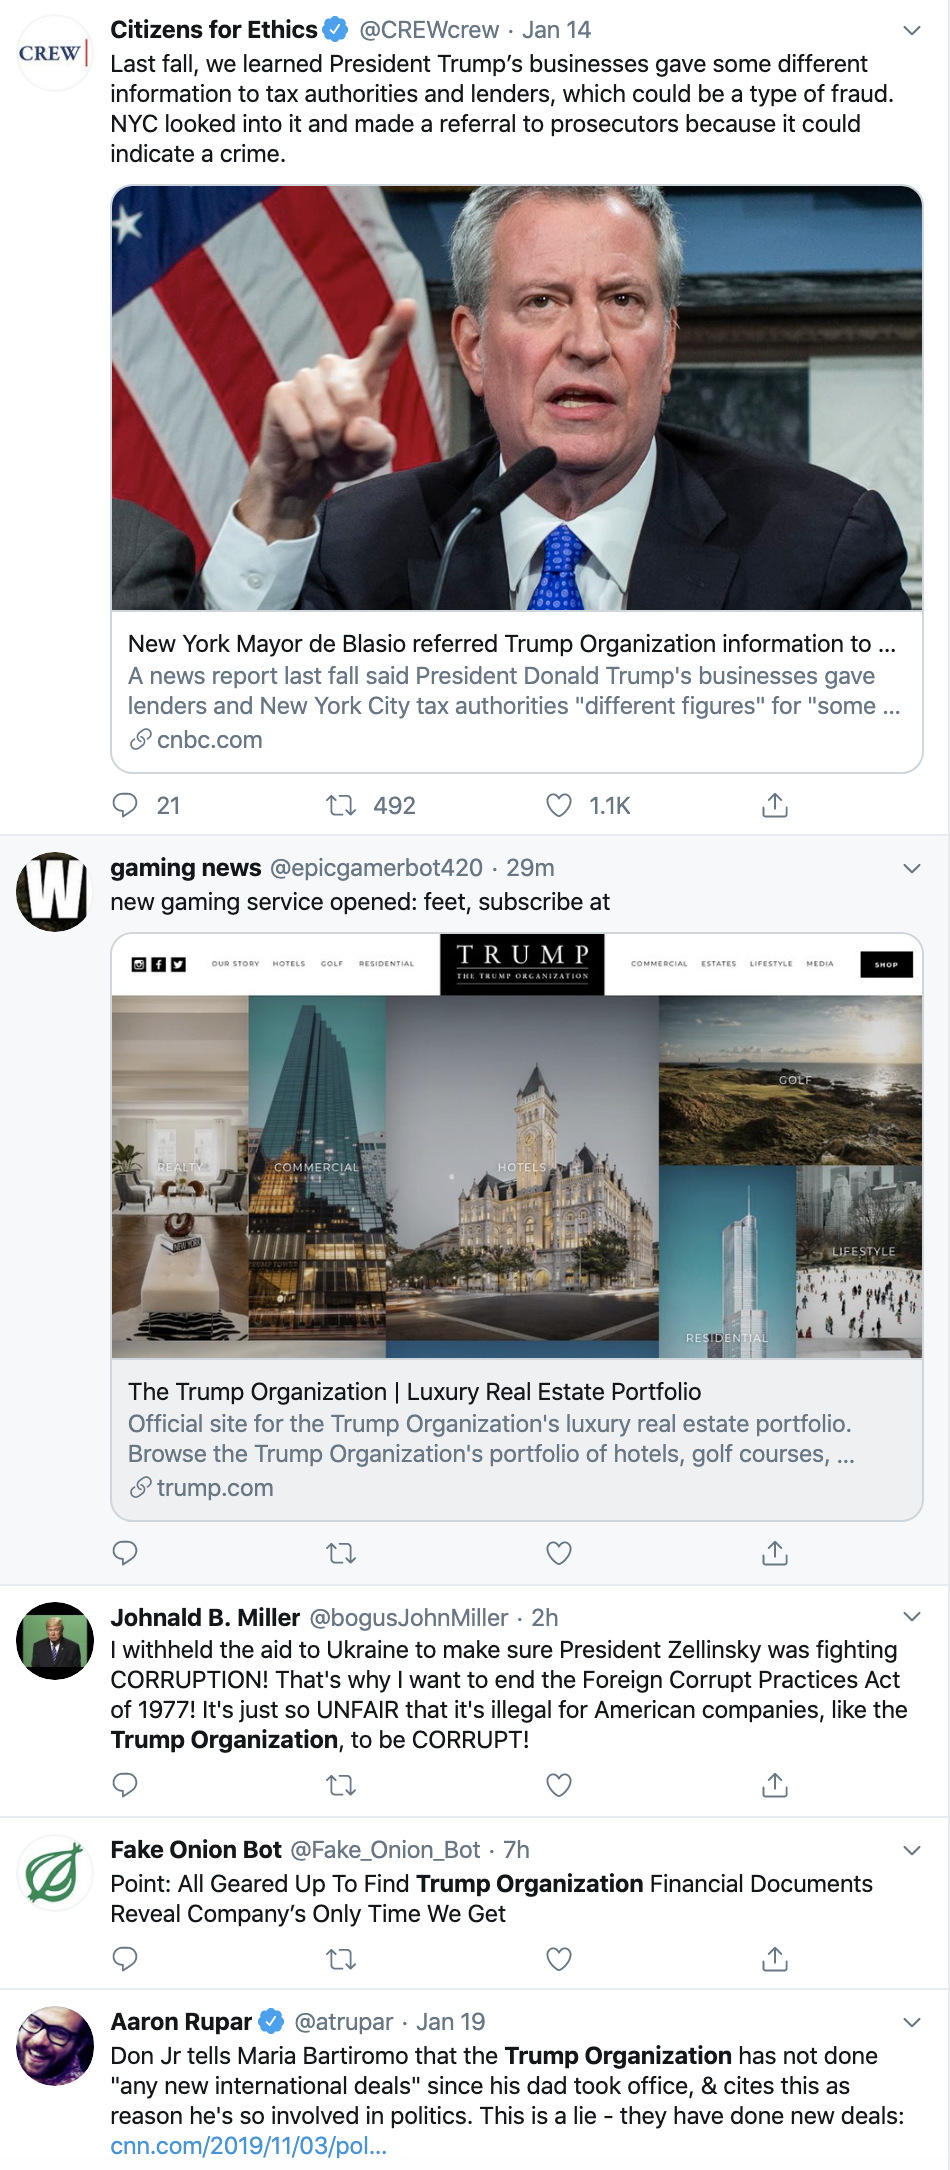 Screen-Shot-2020-01-20-at-1.22.48-PM Taxpayer Money Funnel To Trump Businesses Announced By 'Politico' Corruption Crime Domestic Policy Featured Foreign Policy Top Stories